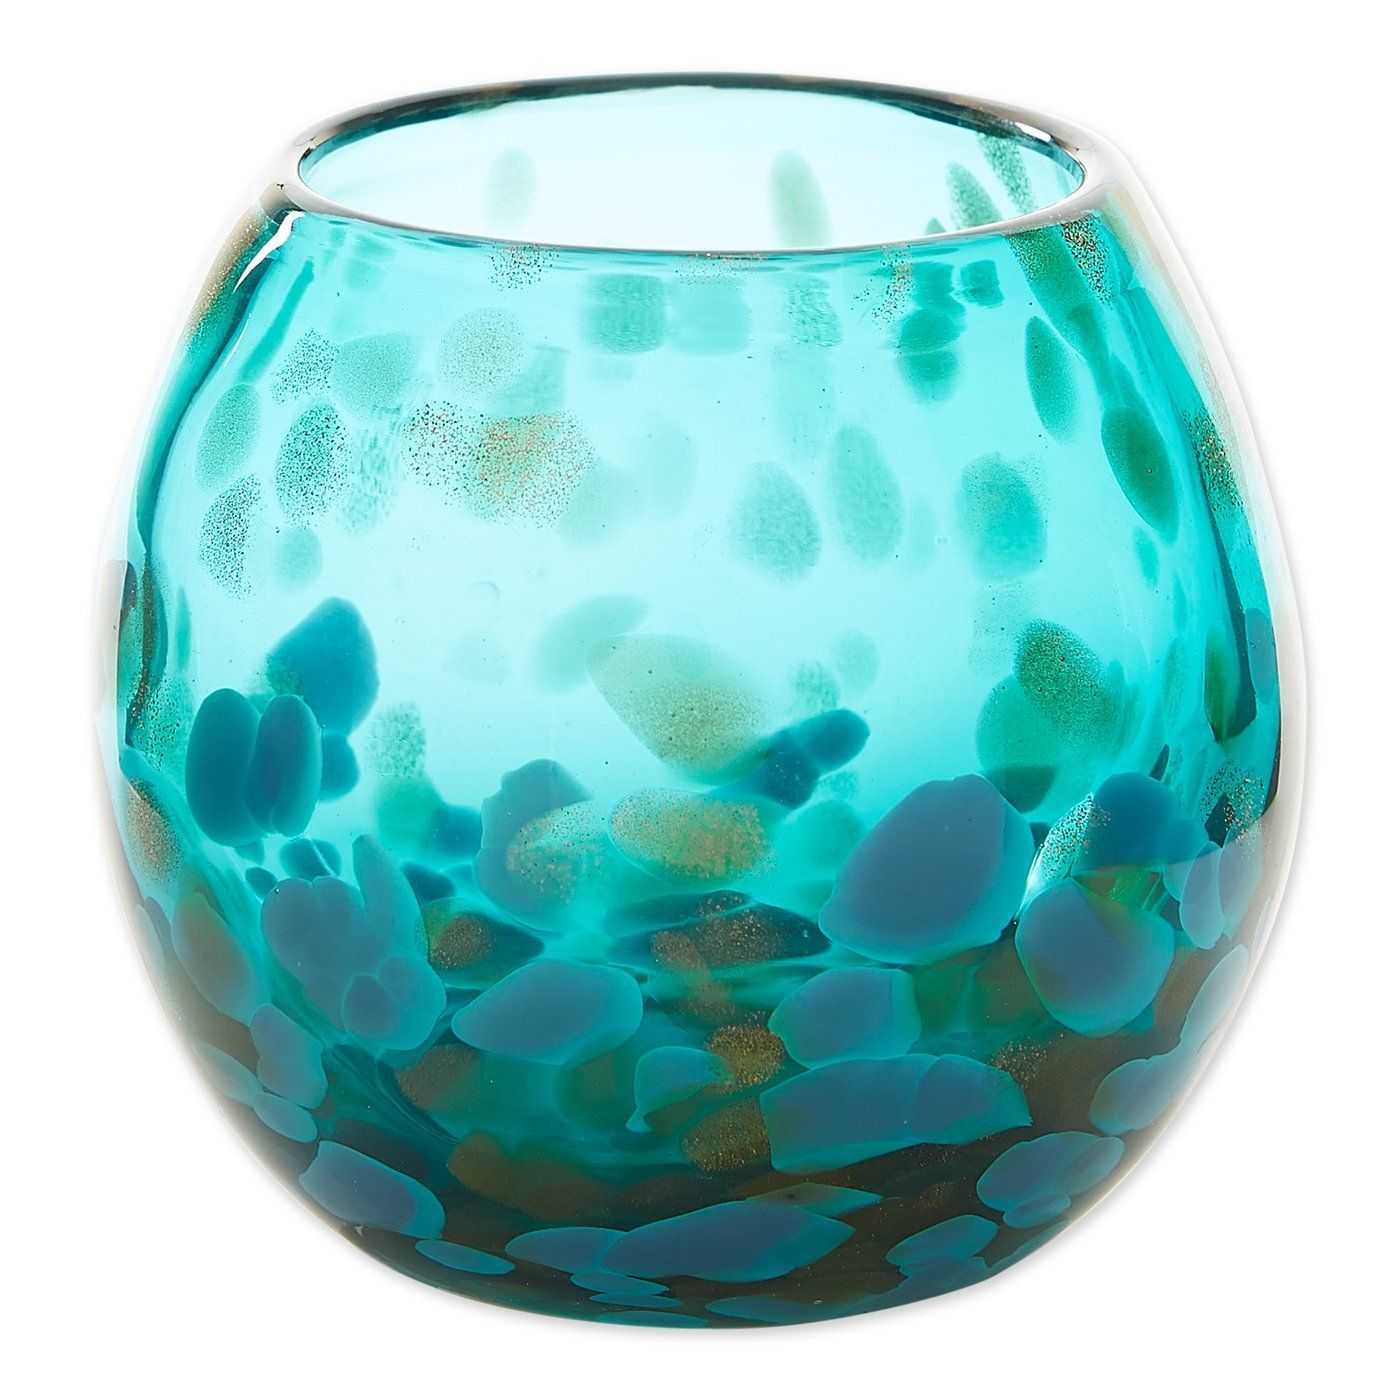 Primary image for Accent Plus Aqua Bowl Vase